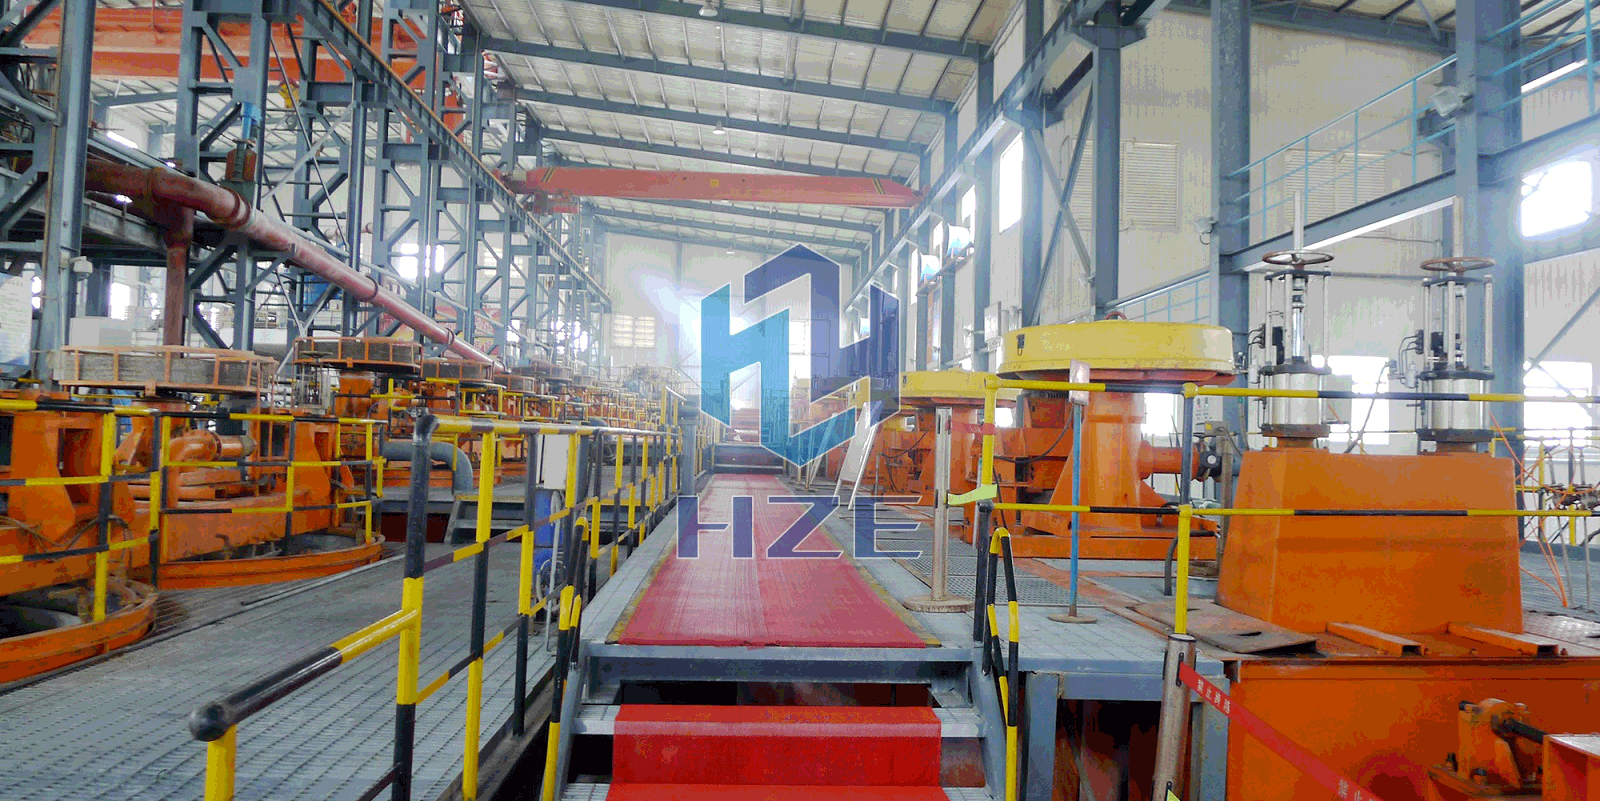 Technical Transformation of Existing Mineral Processing Plant